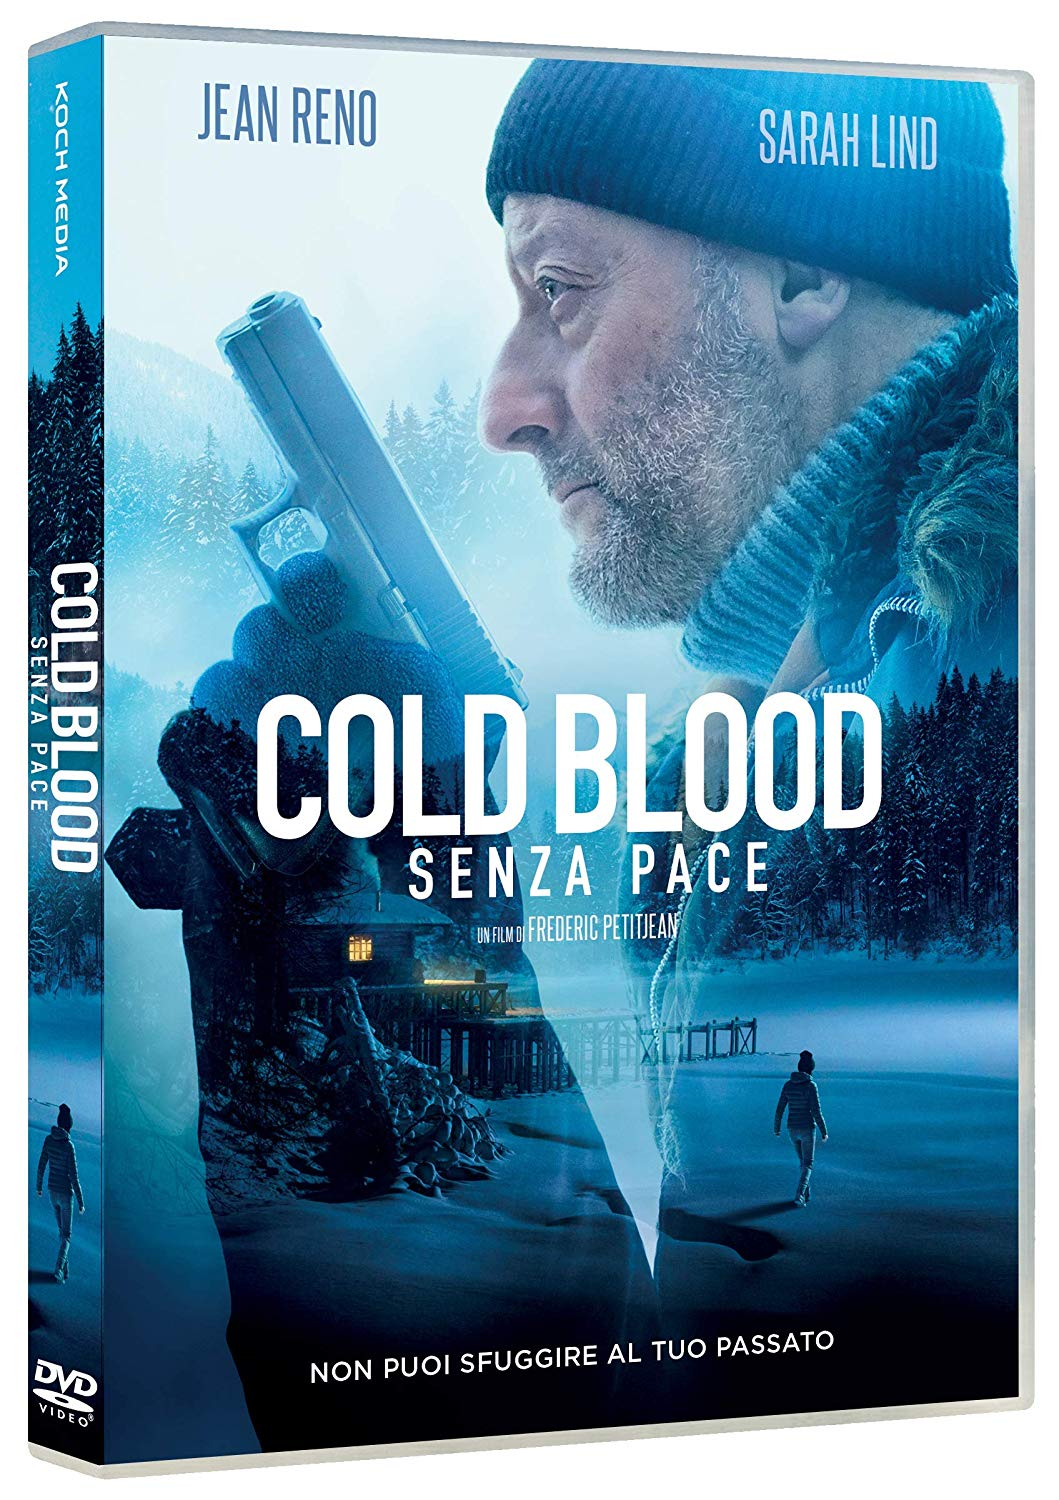 COLD BLOOD - SENZA PACE (DVD)